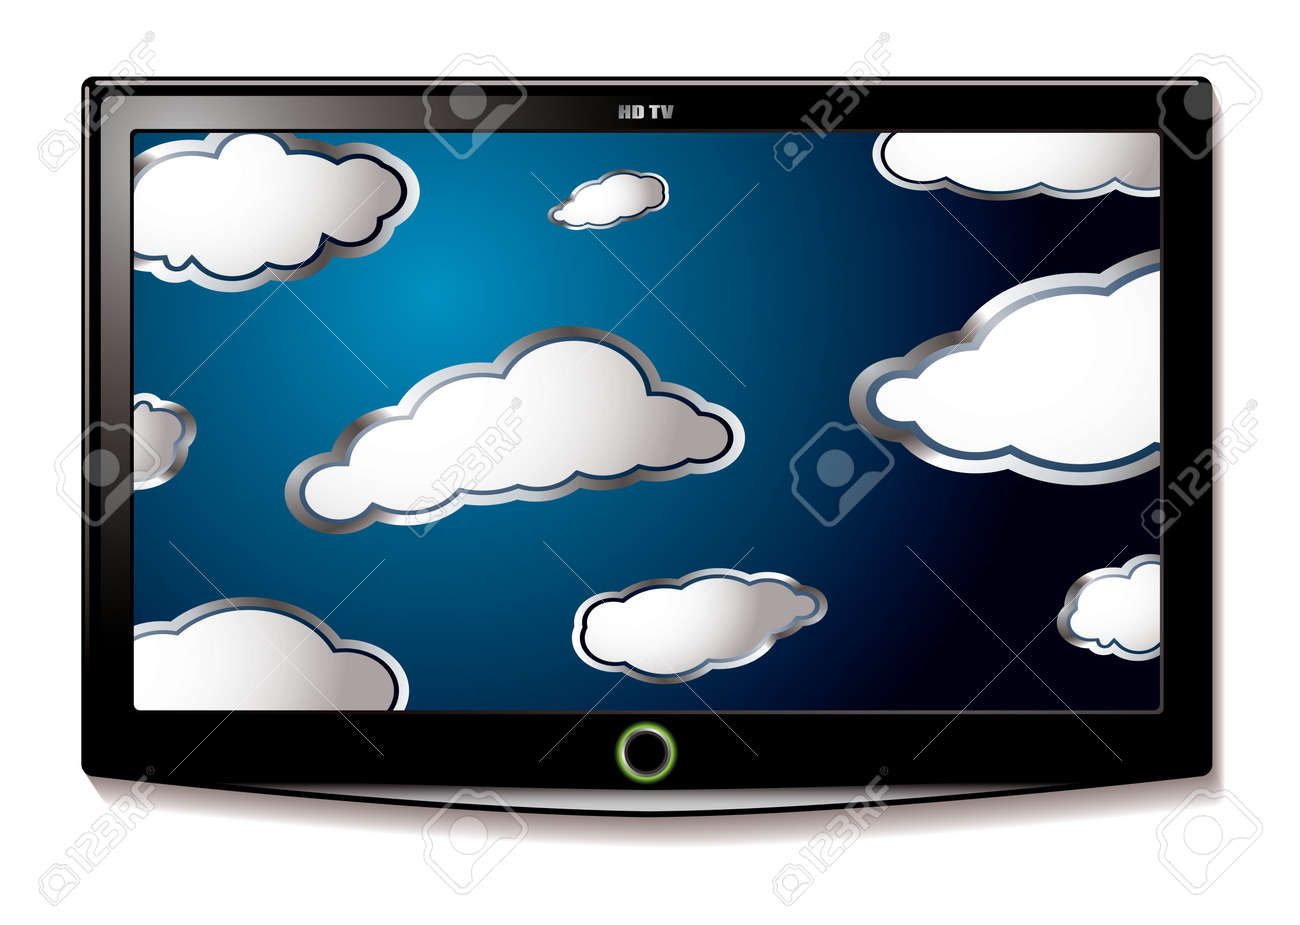 Modern LCD television with flat screen and blue sky with clouds Stock Photo - 7223419